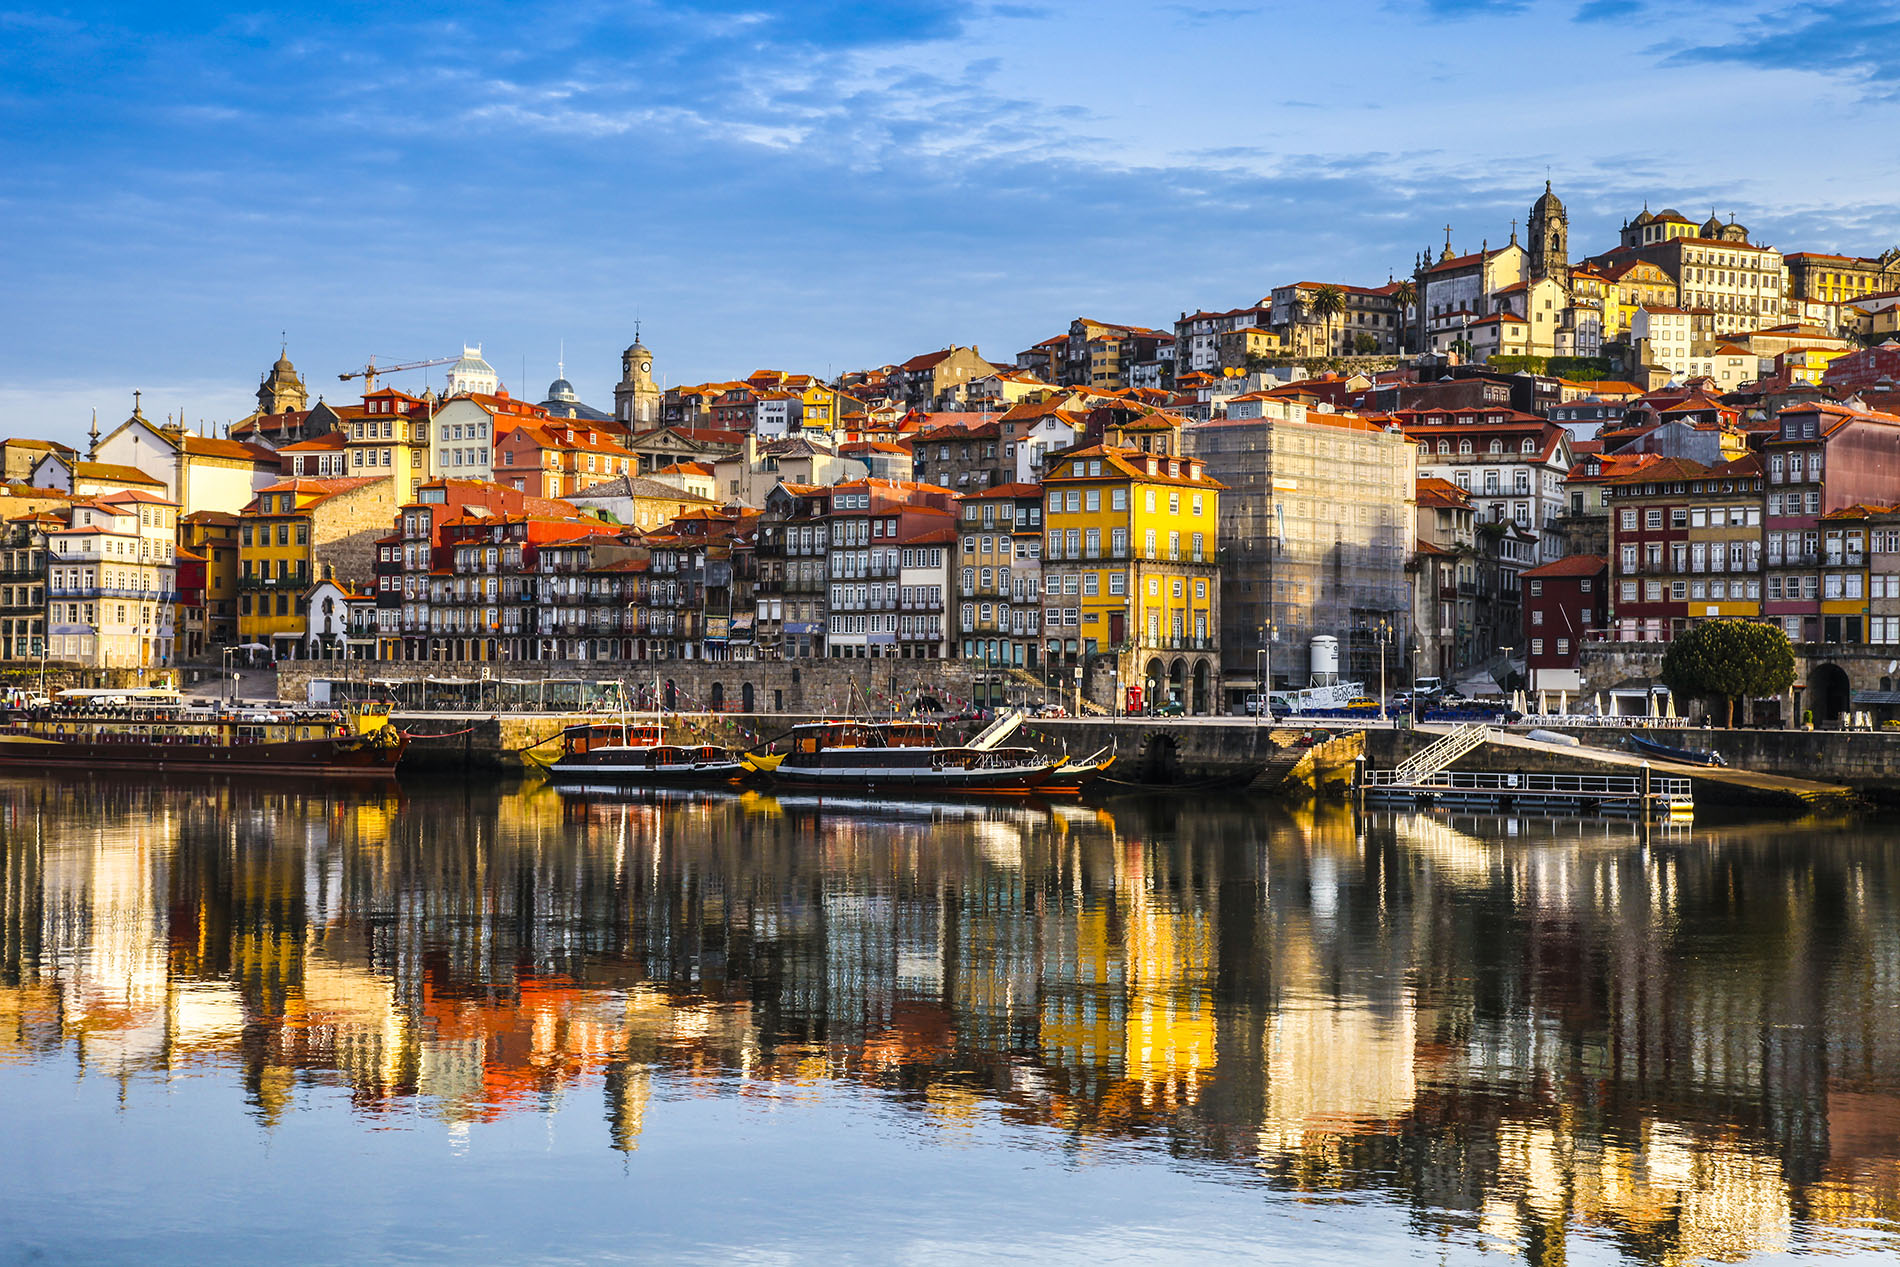 Porto lining the banks of the Douro